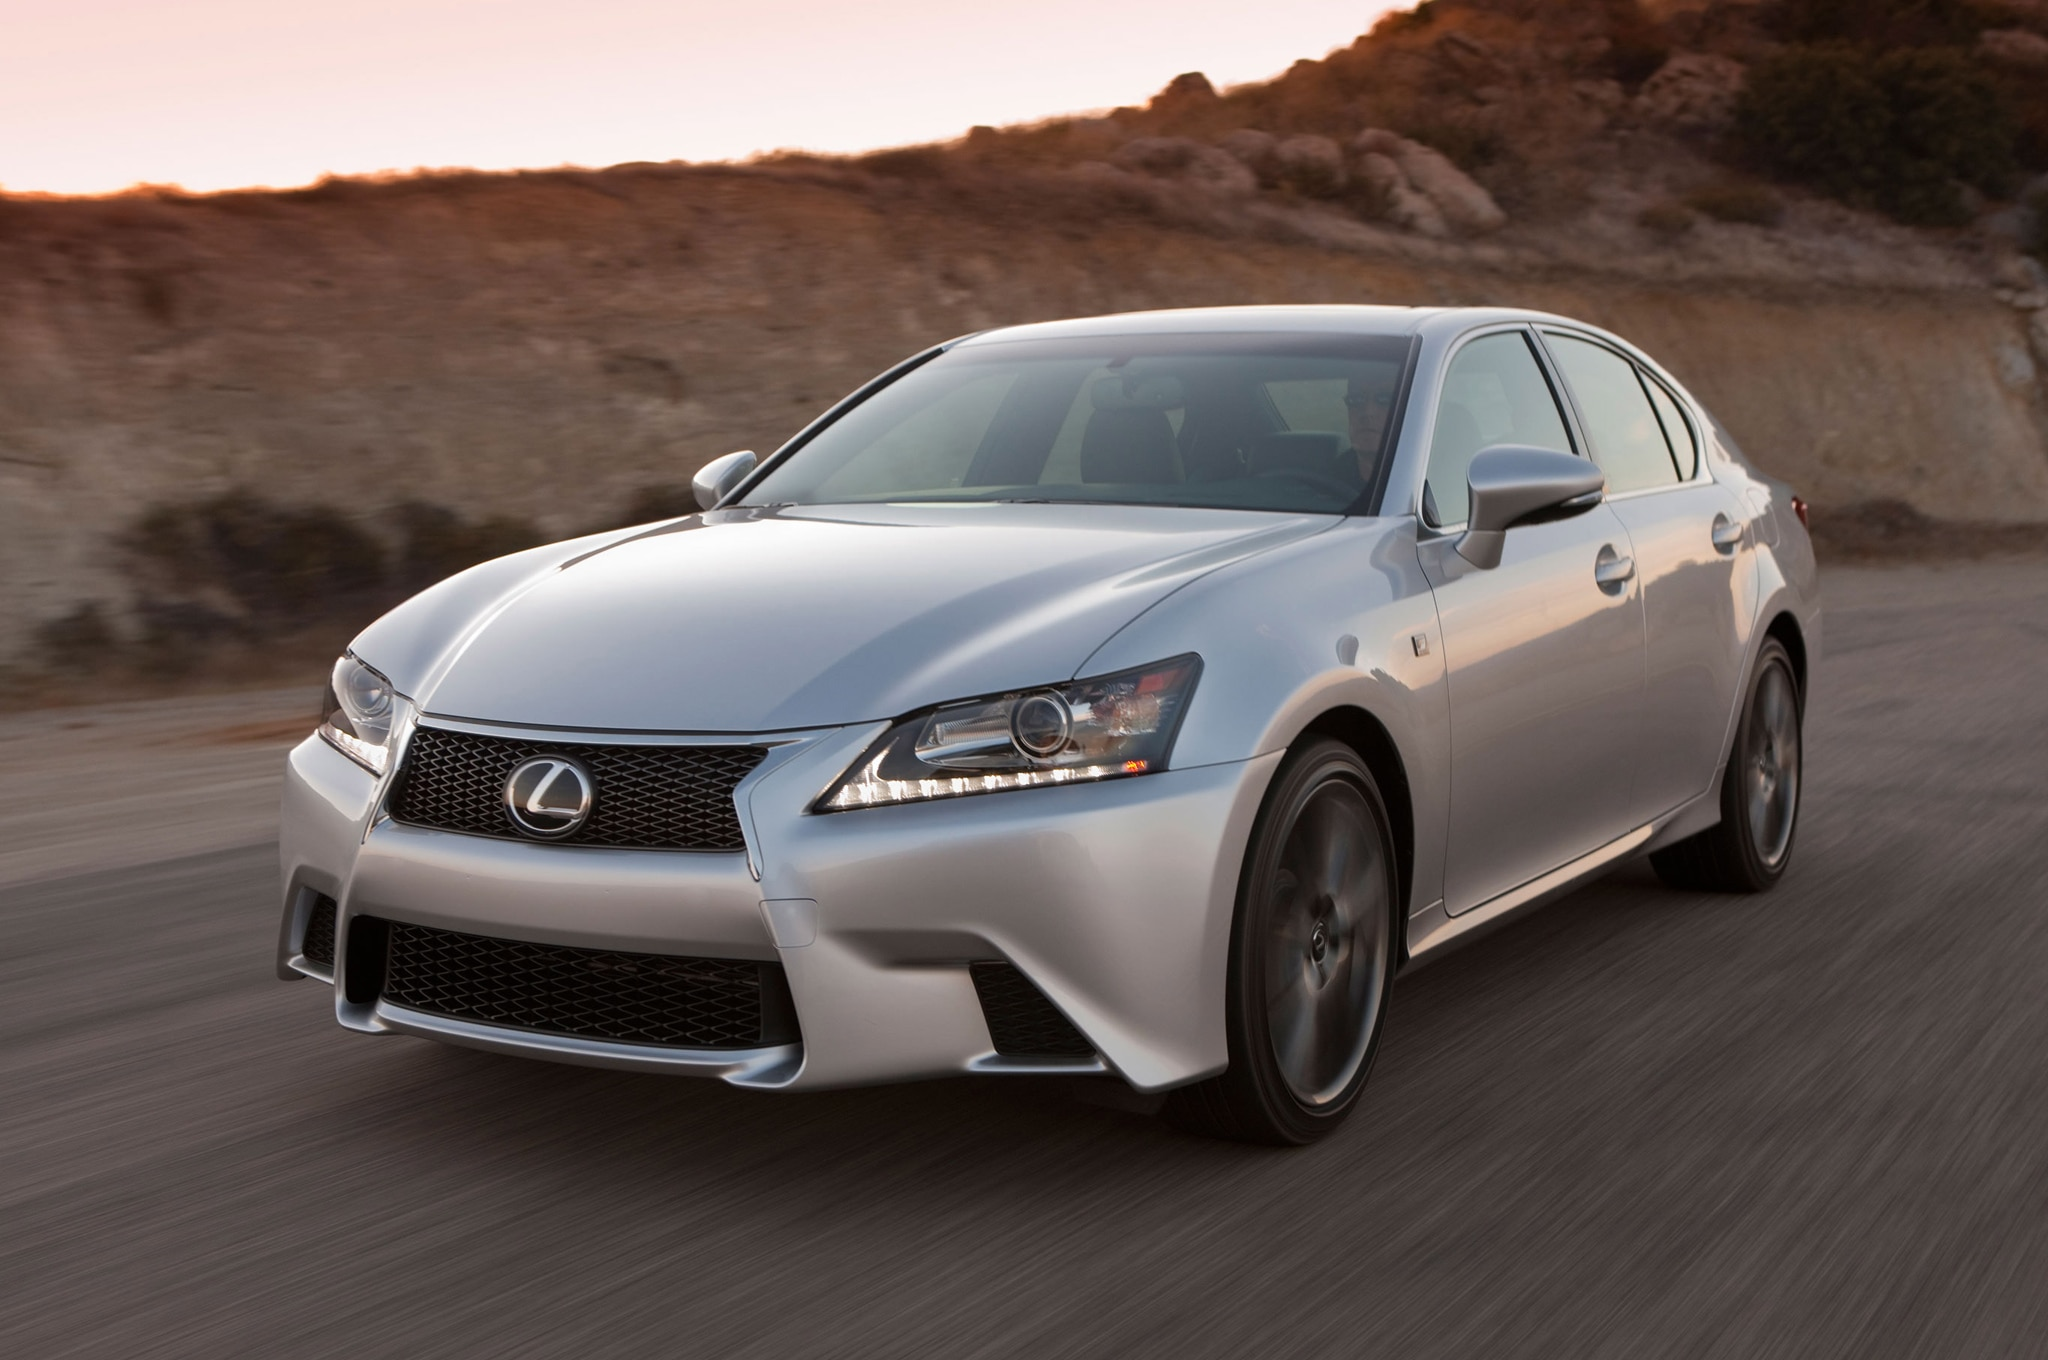 2014 Lexus GS350 Front Three Quarter1